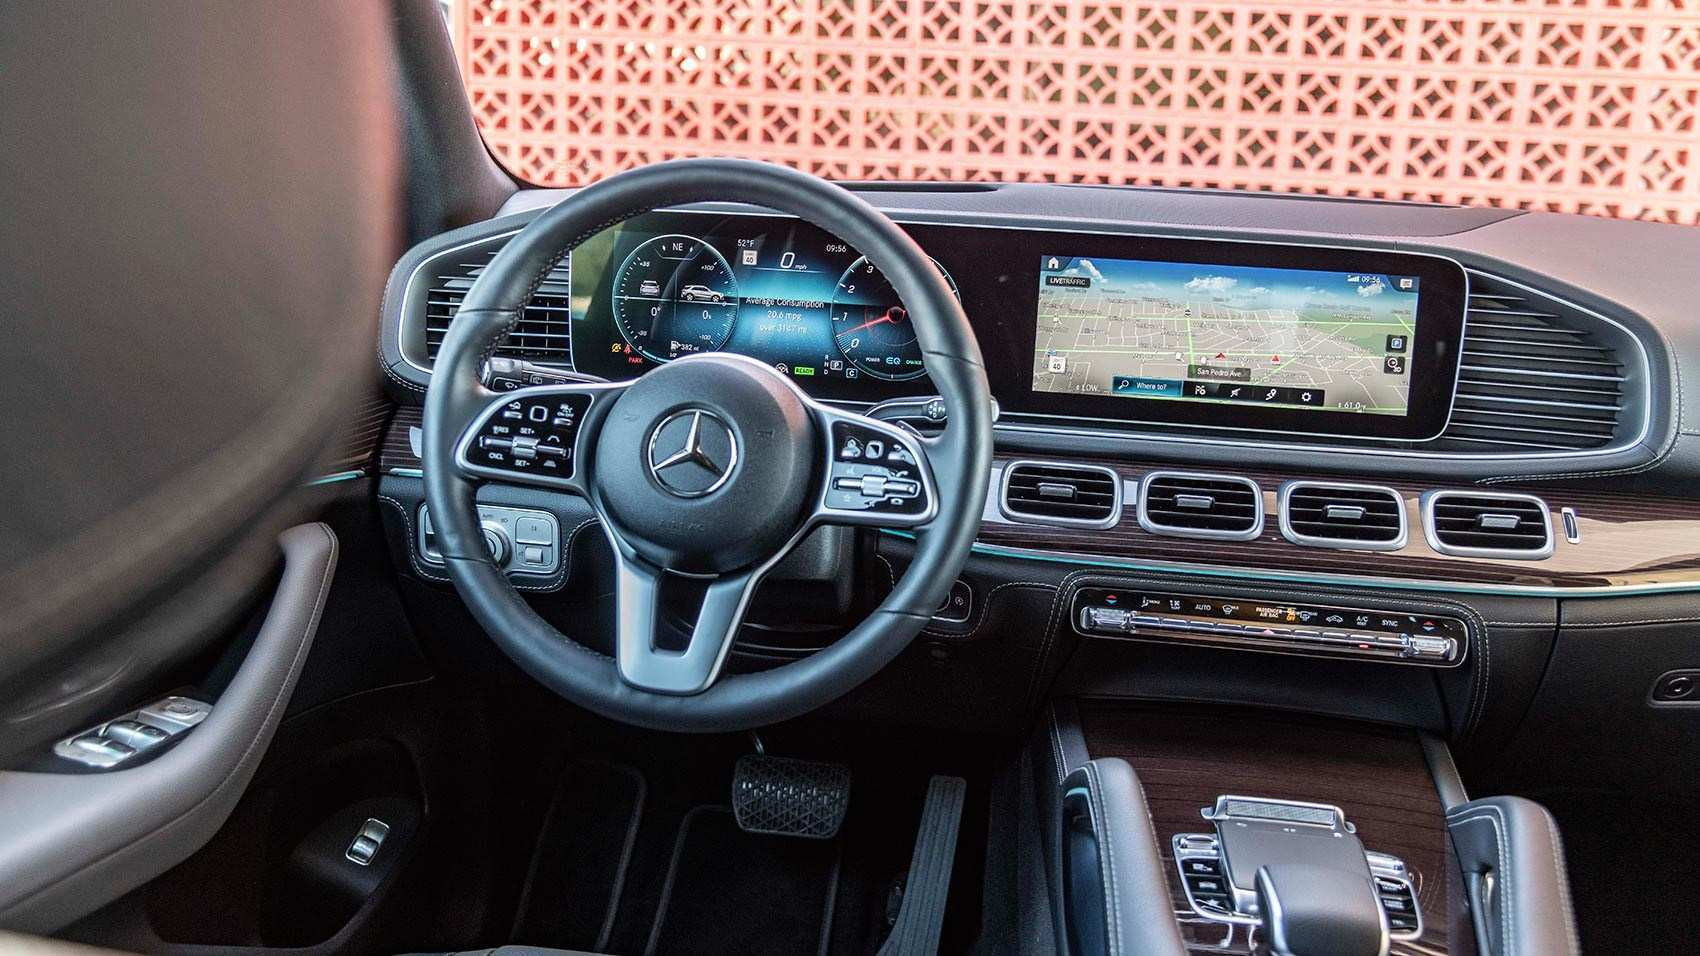 87 All New Mercedes Gle 2019 Interior New Concept by Mercedes Gle 2019 Interior